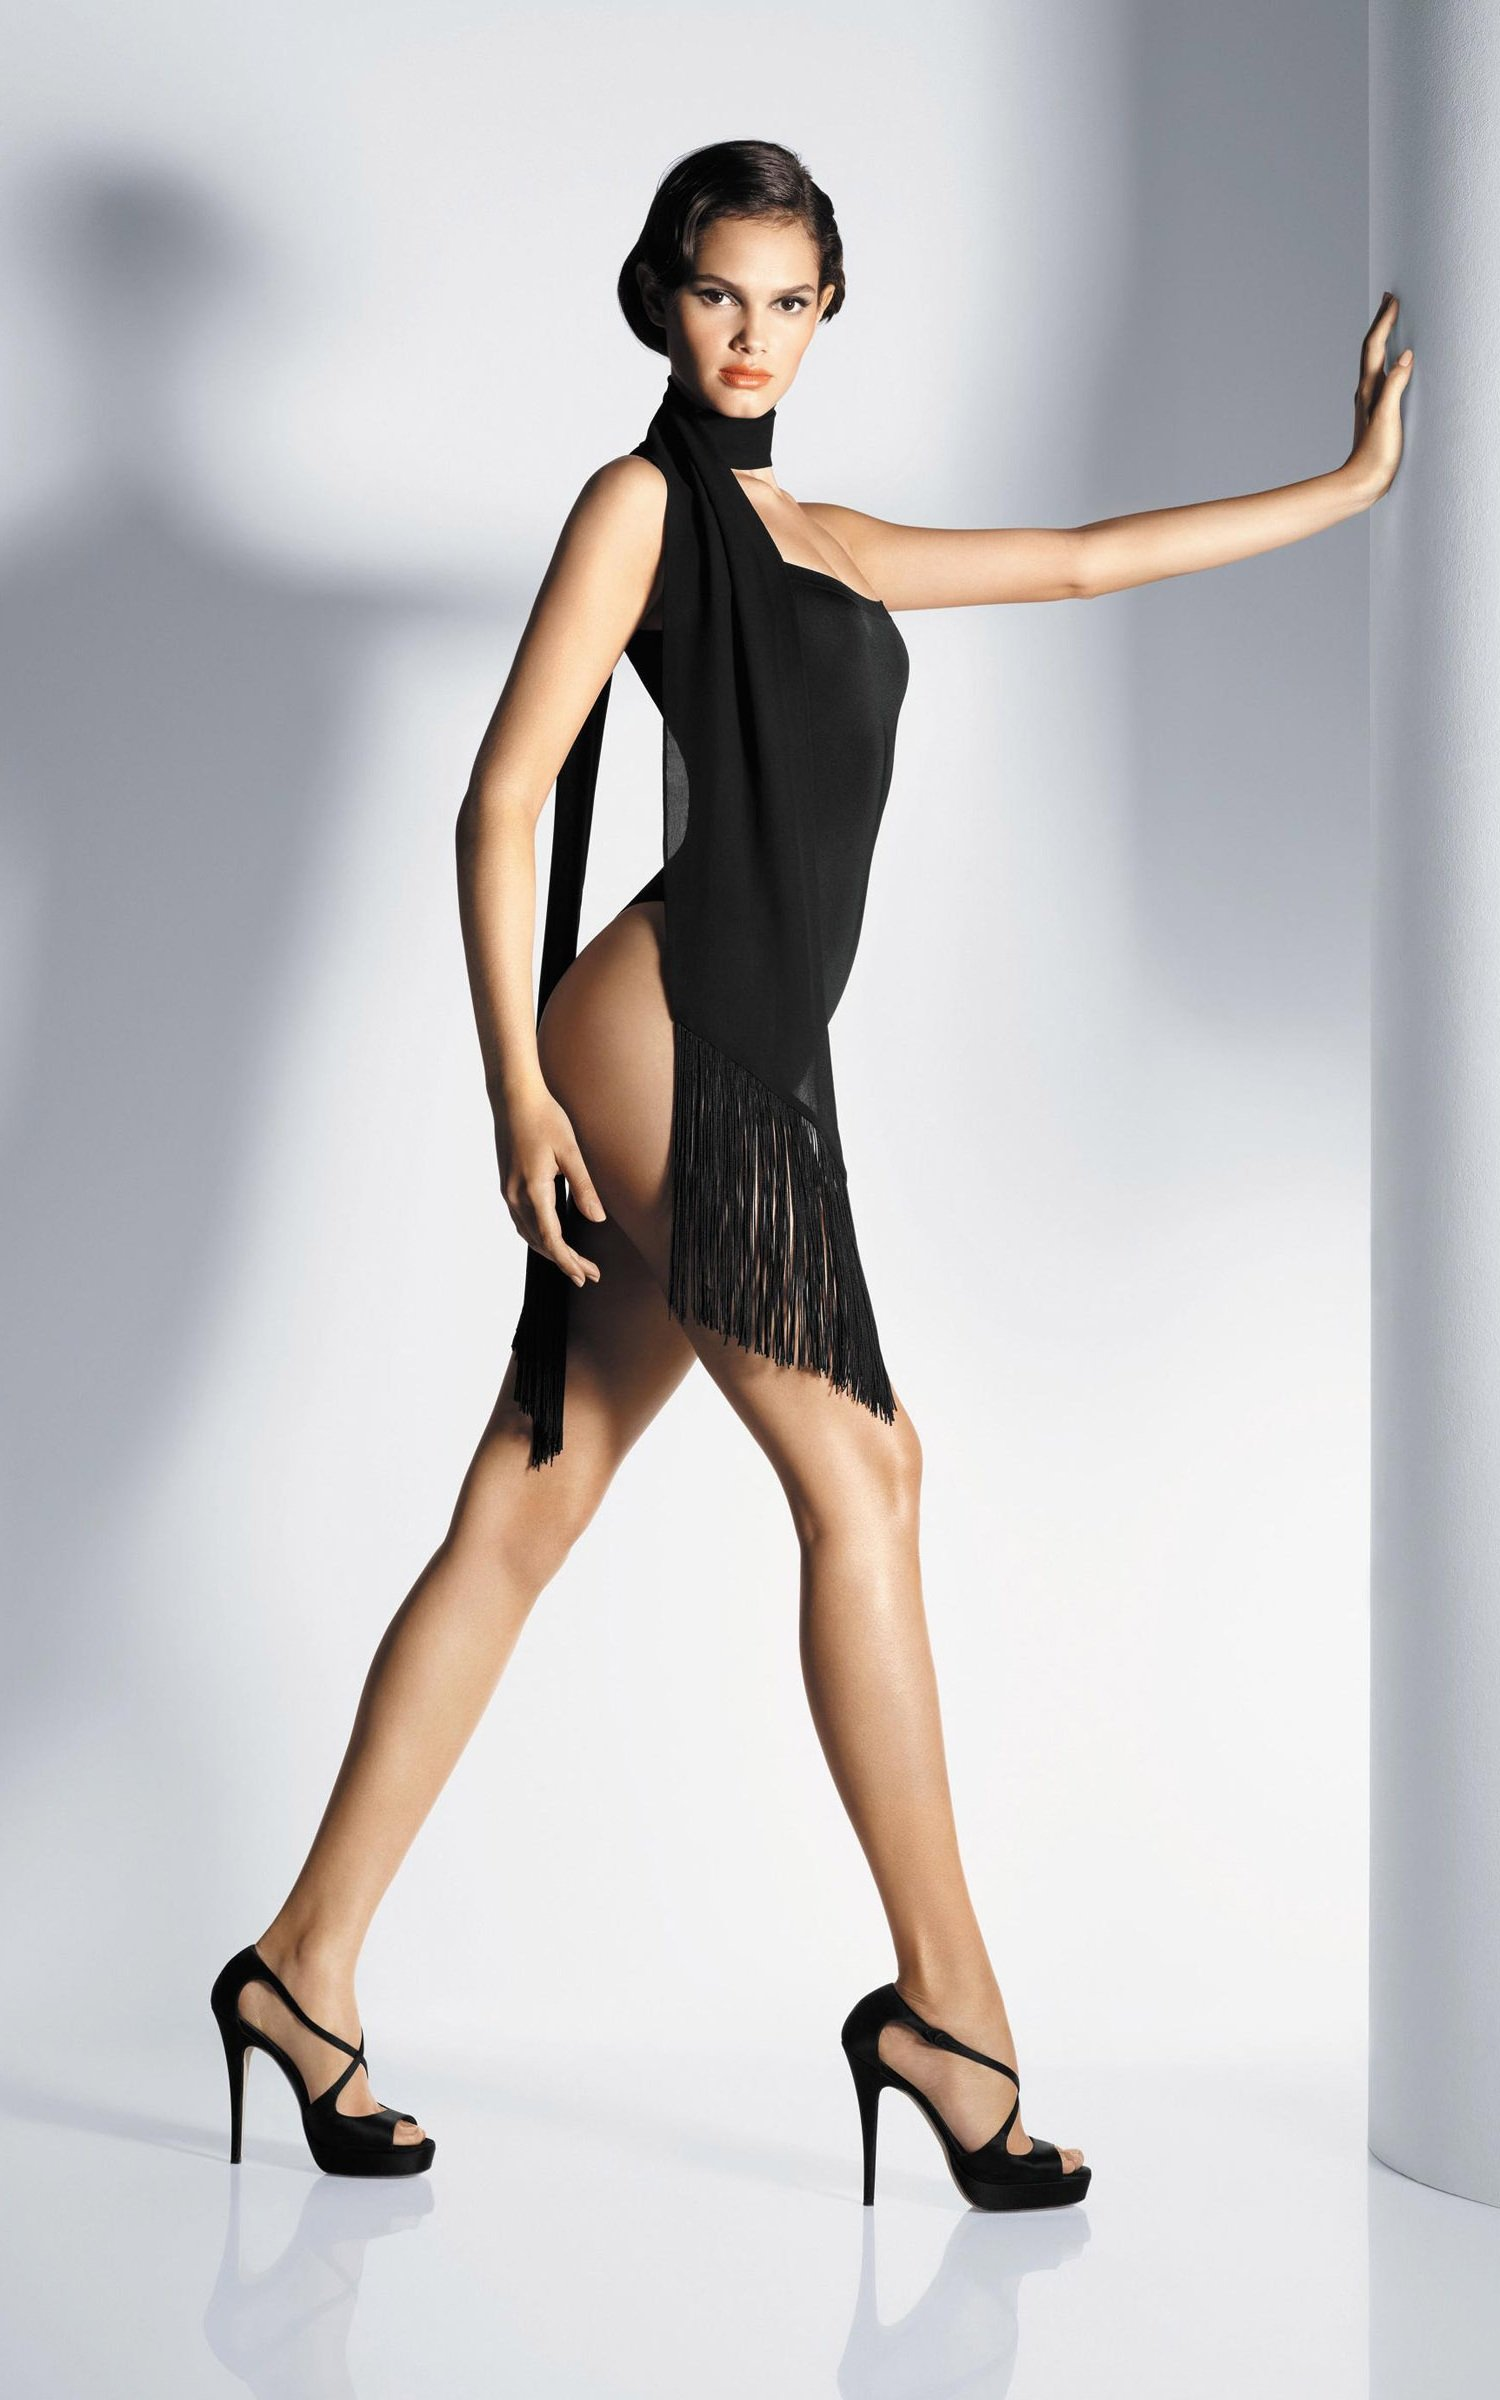 Long Legs And High Heels Photo Album   Watch Out Theres 1500x2400